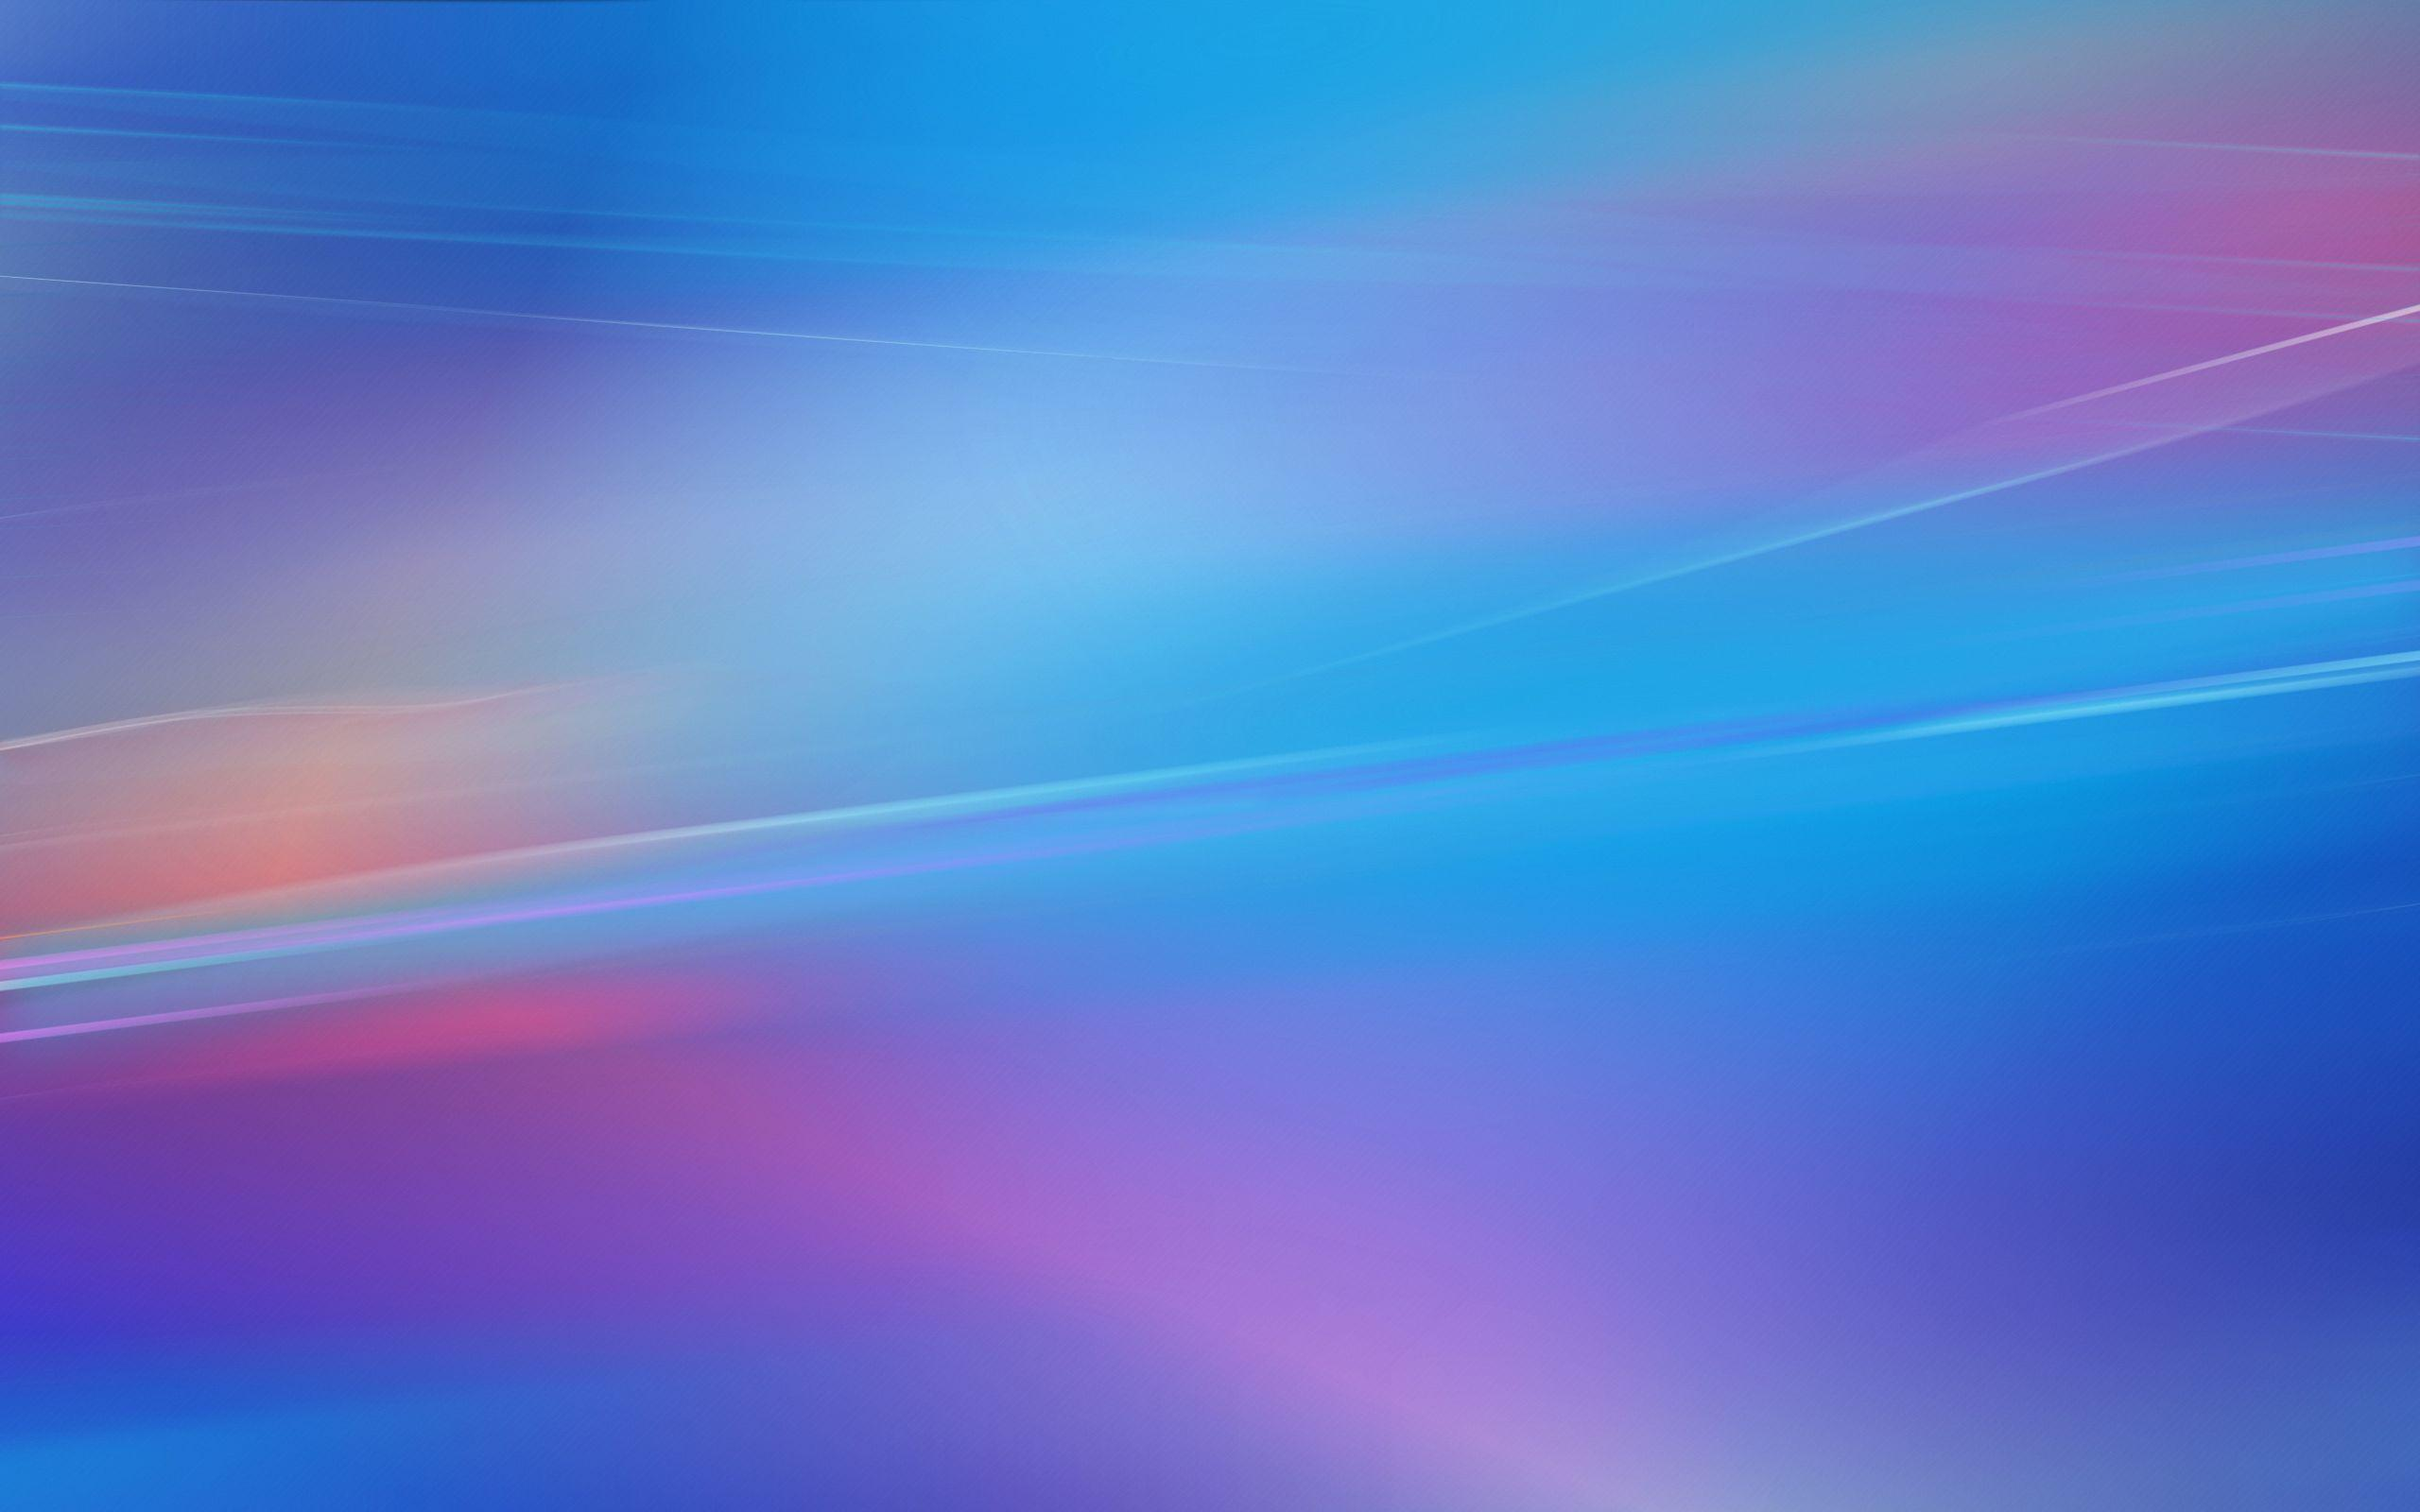 Blue Screen Wallpapers 2560x1600